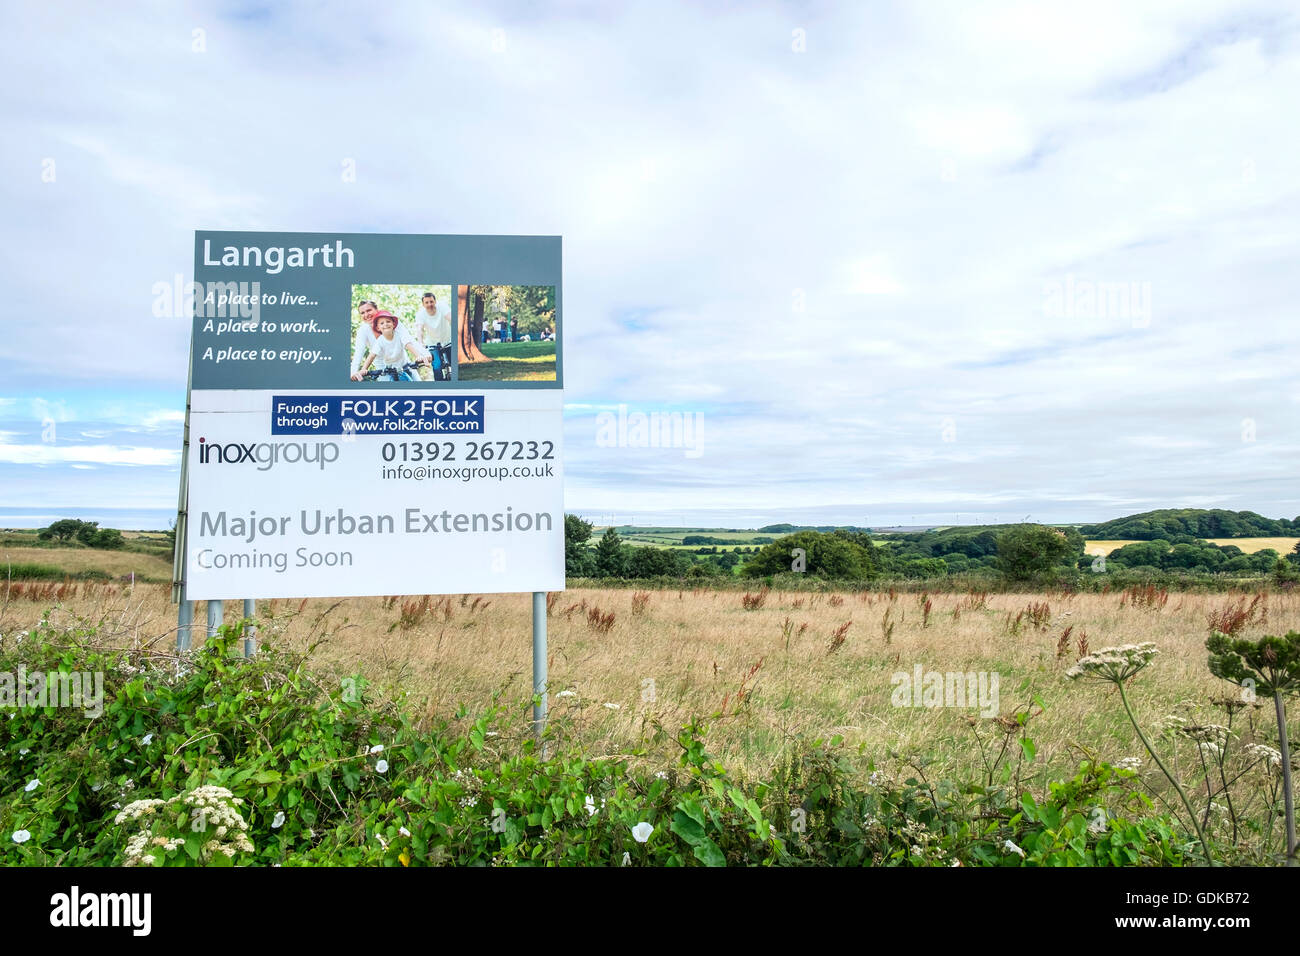 A greenfield site at Langarth on the outskirts of Truro in Cornwall, UK a Major urban extension is soon to be developed - Stock Image